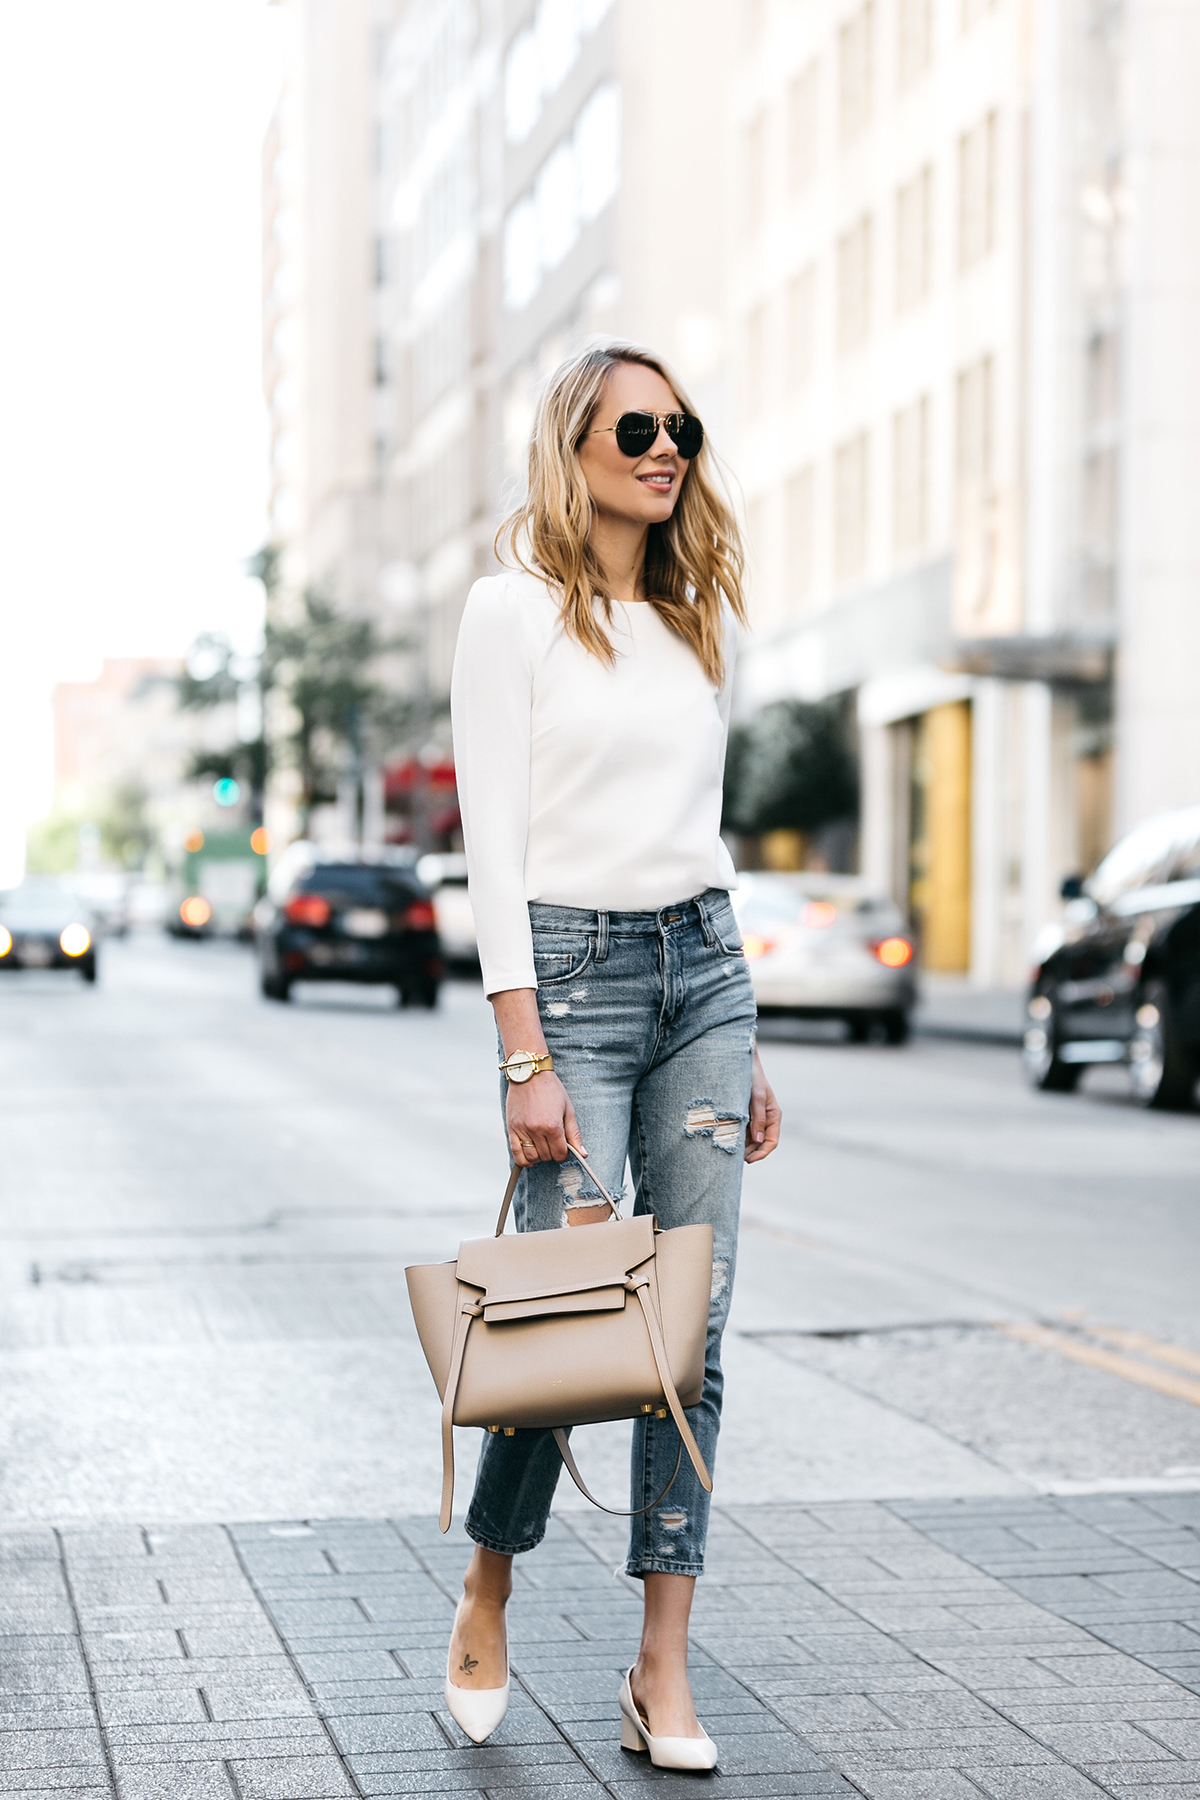 Fashion Jackson, Dallas, Blogger, Fashion Blogger, Street Style, Ann Taylor White Puff Sleeve Top, Celine Belt Bag, Blanknyc Denim Ripped Mom Jeans, Zara White Block Heels